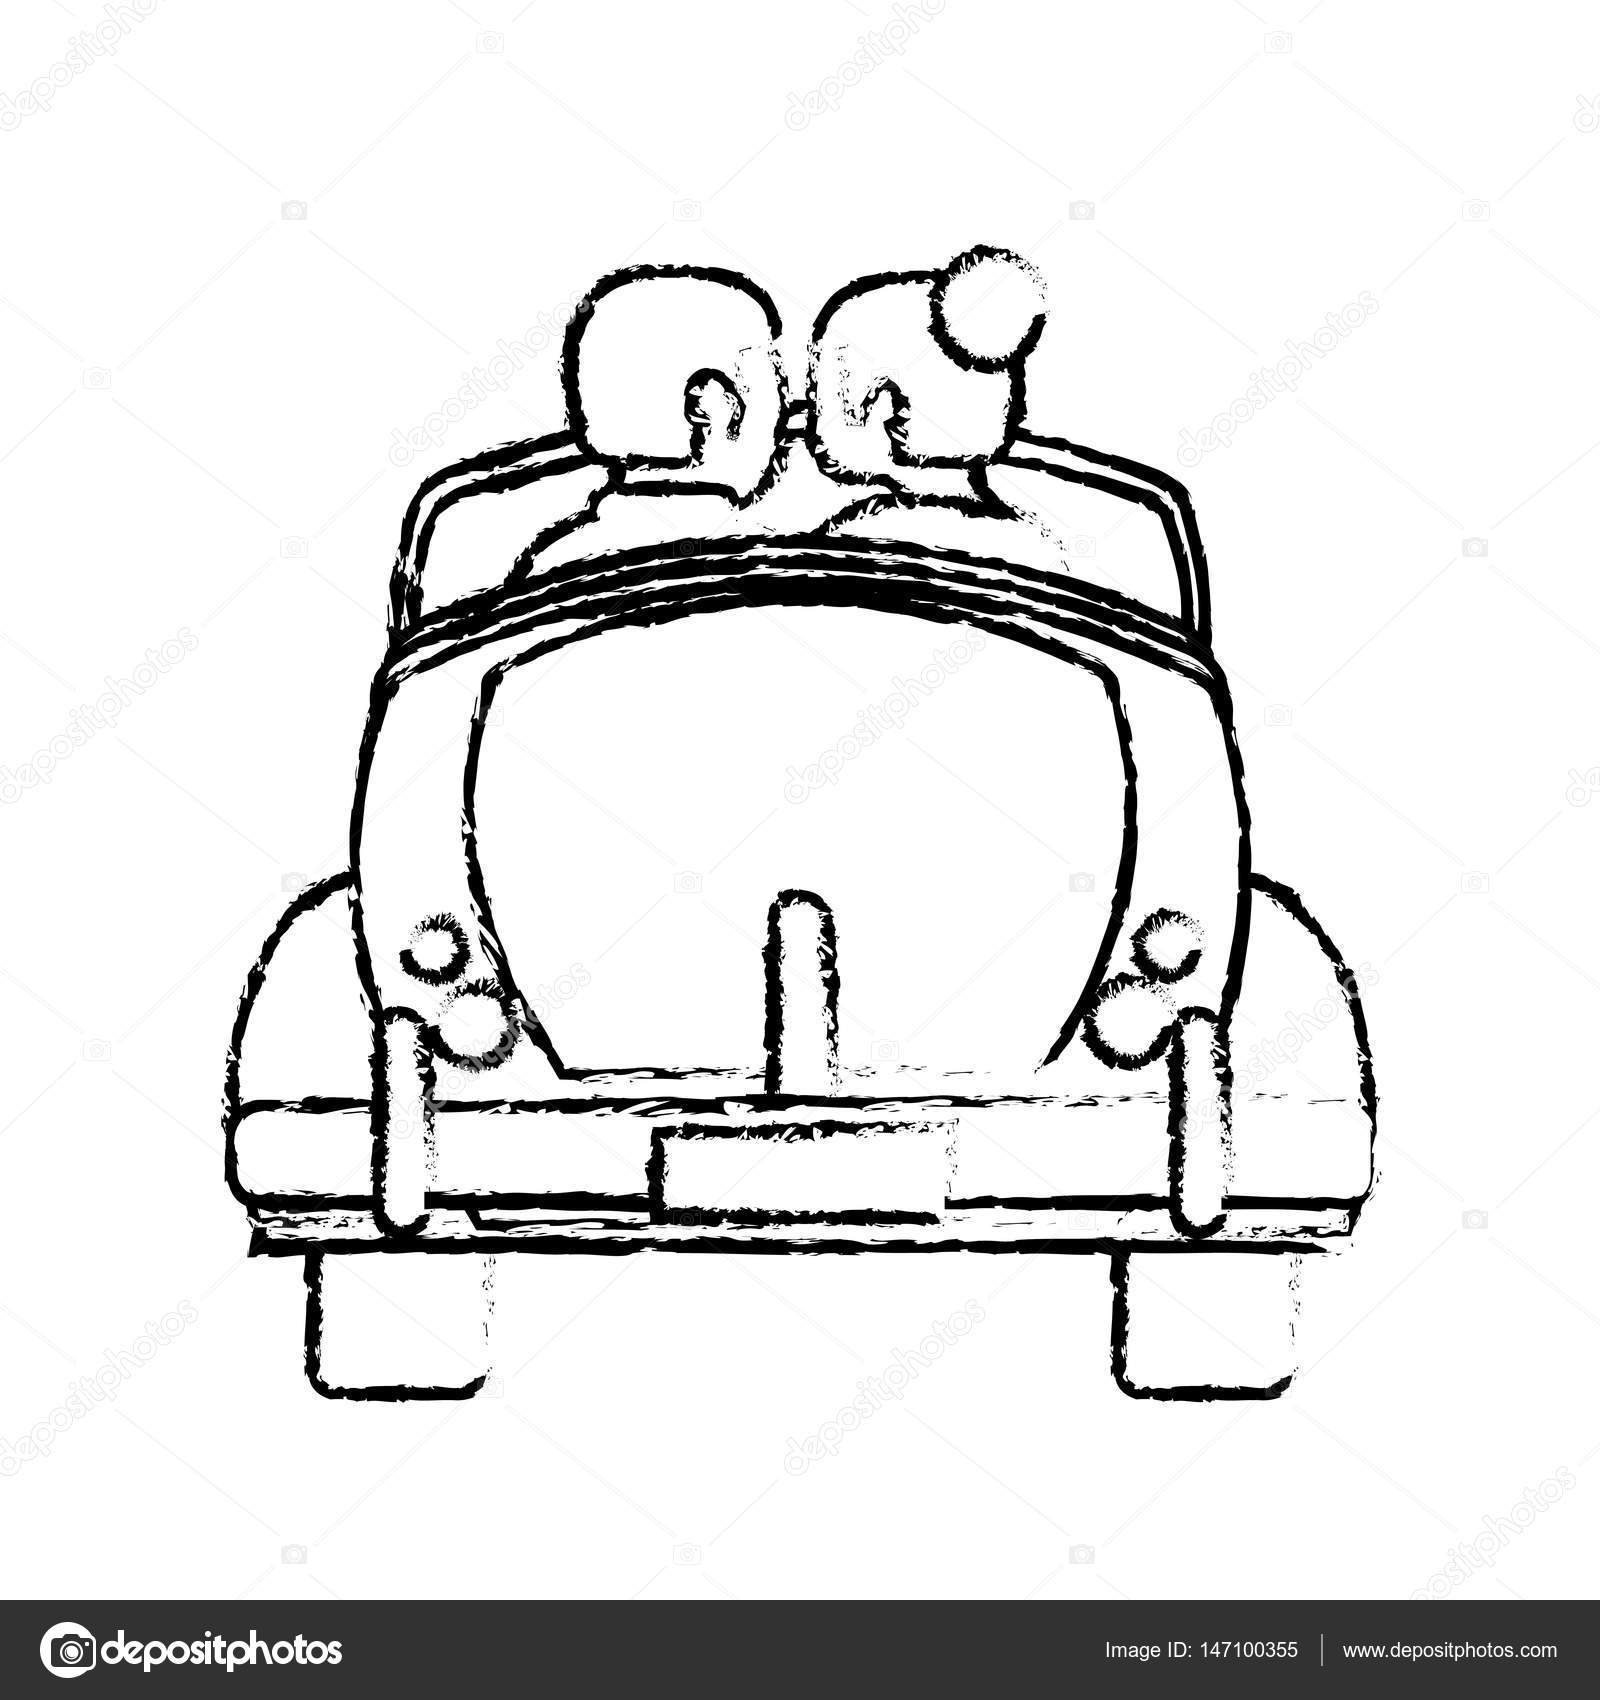 1600x1700 Couple Car Married Honeymoon Sketch Stock Vector Jemastock